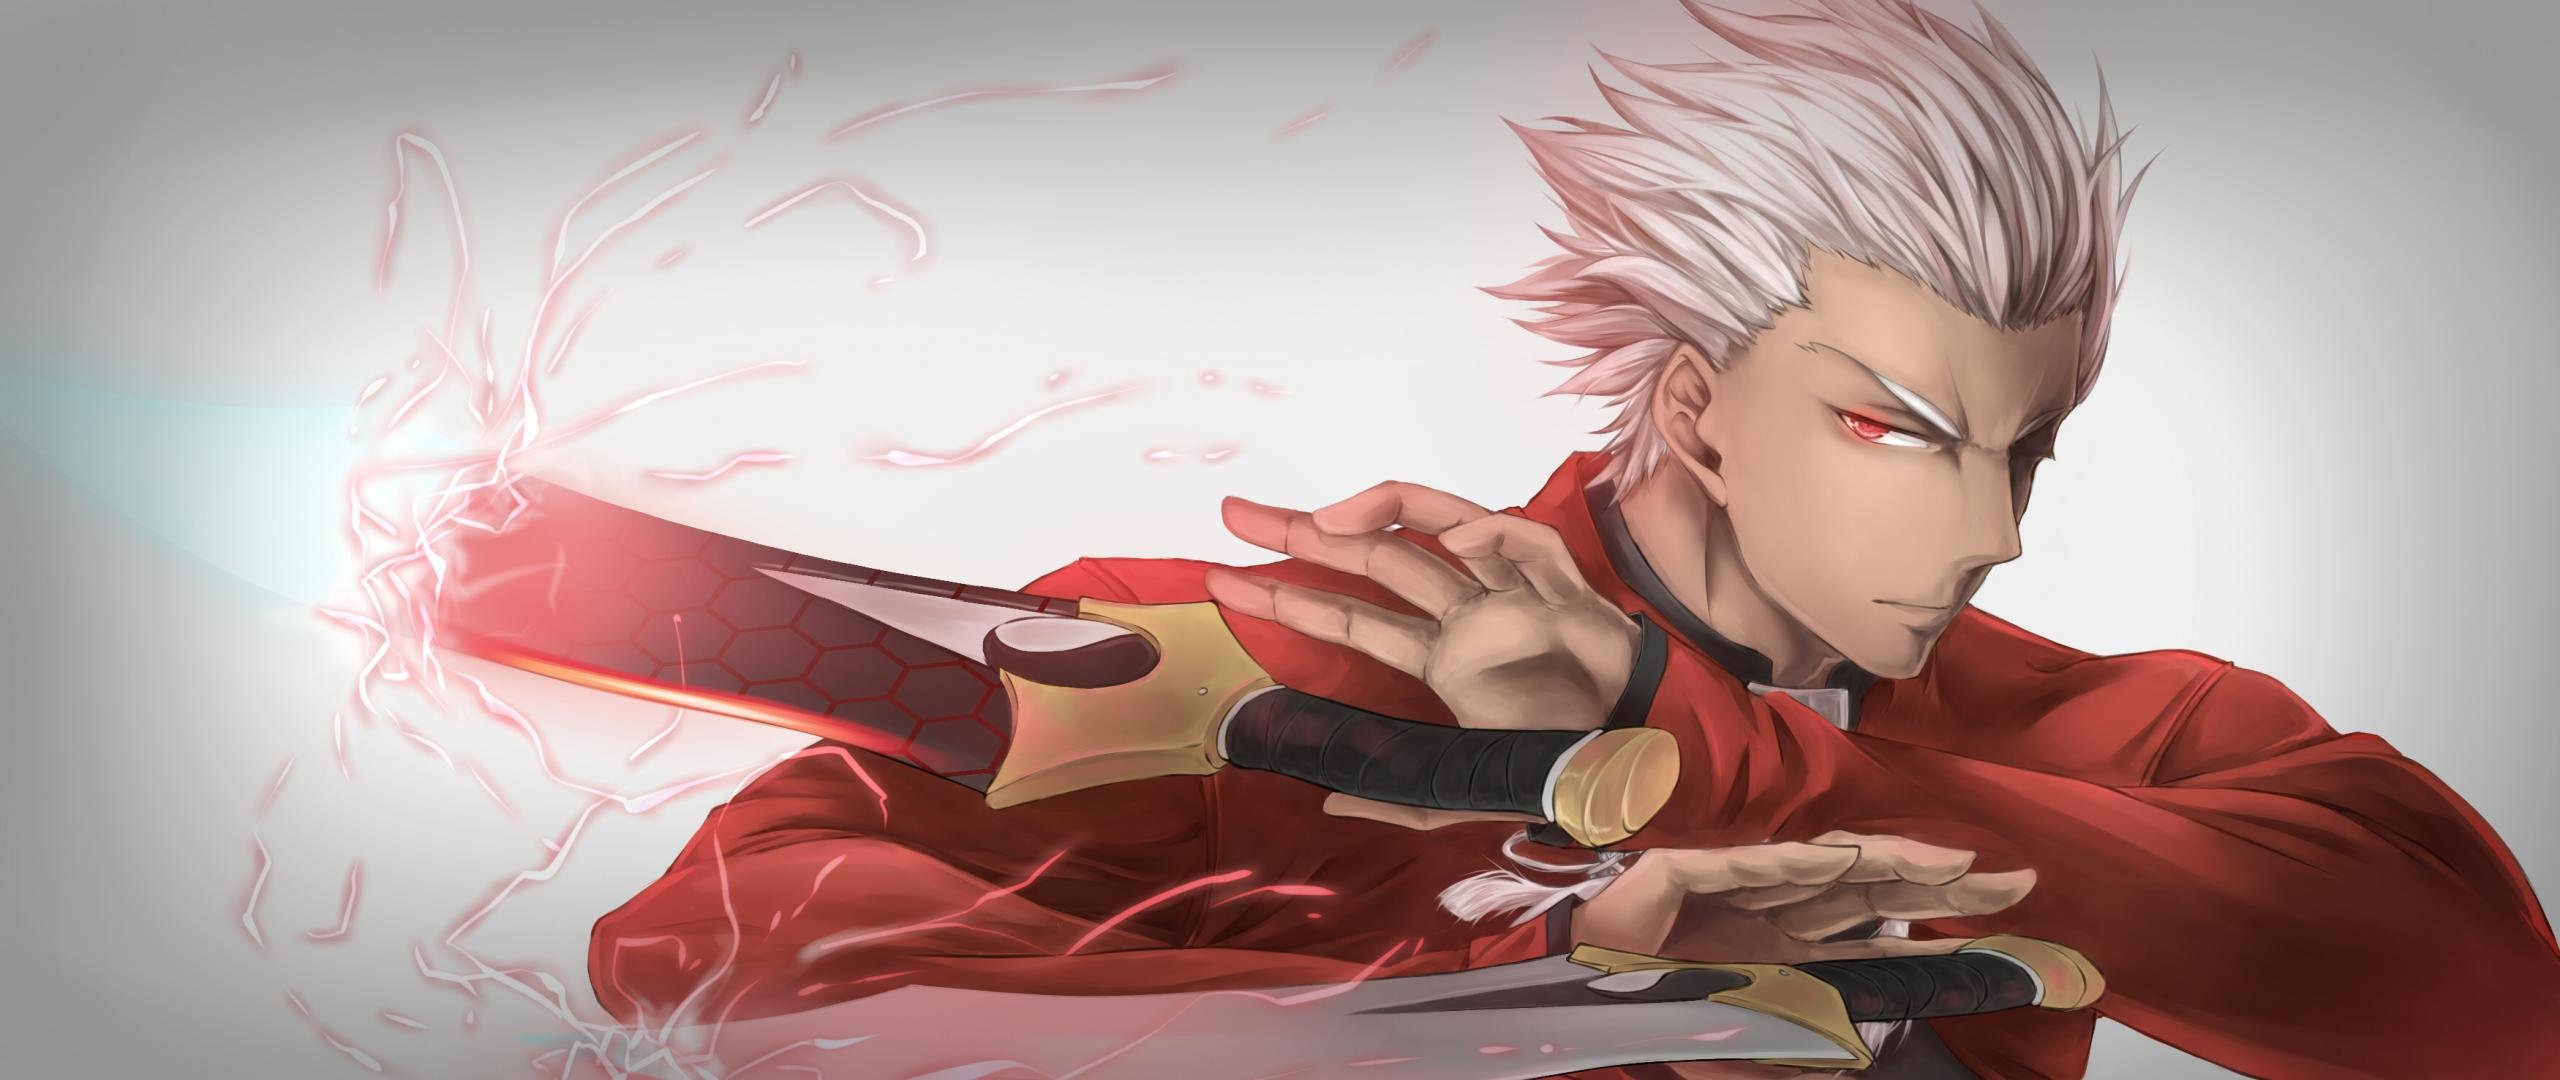 Free download Archer (Fate/Stay Night) wallpaper ID:468326 hd 2560x1080 for desktop